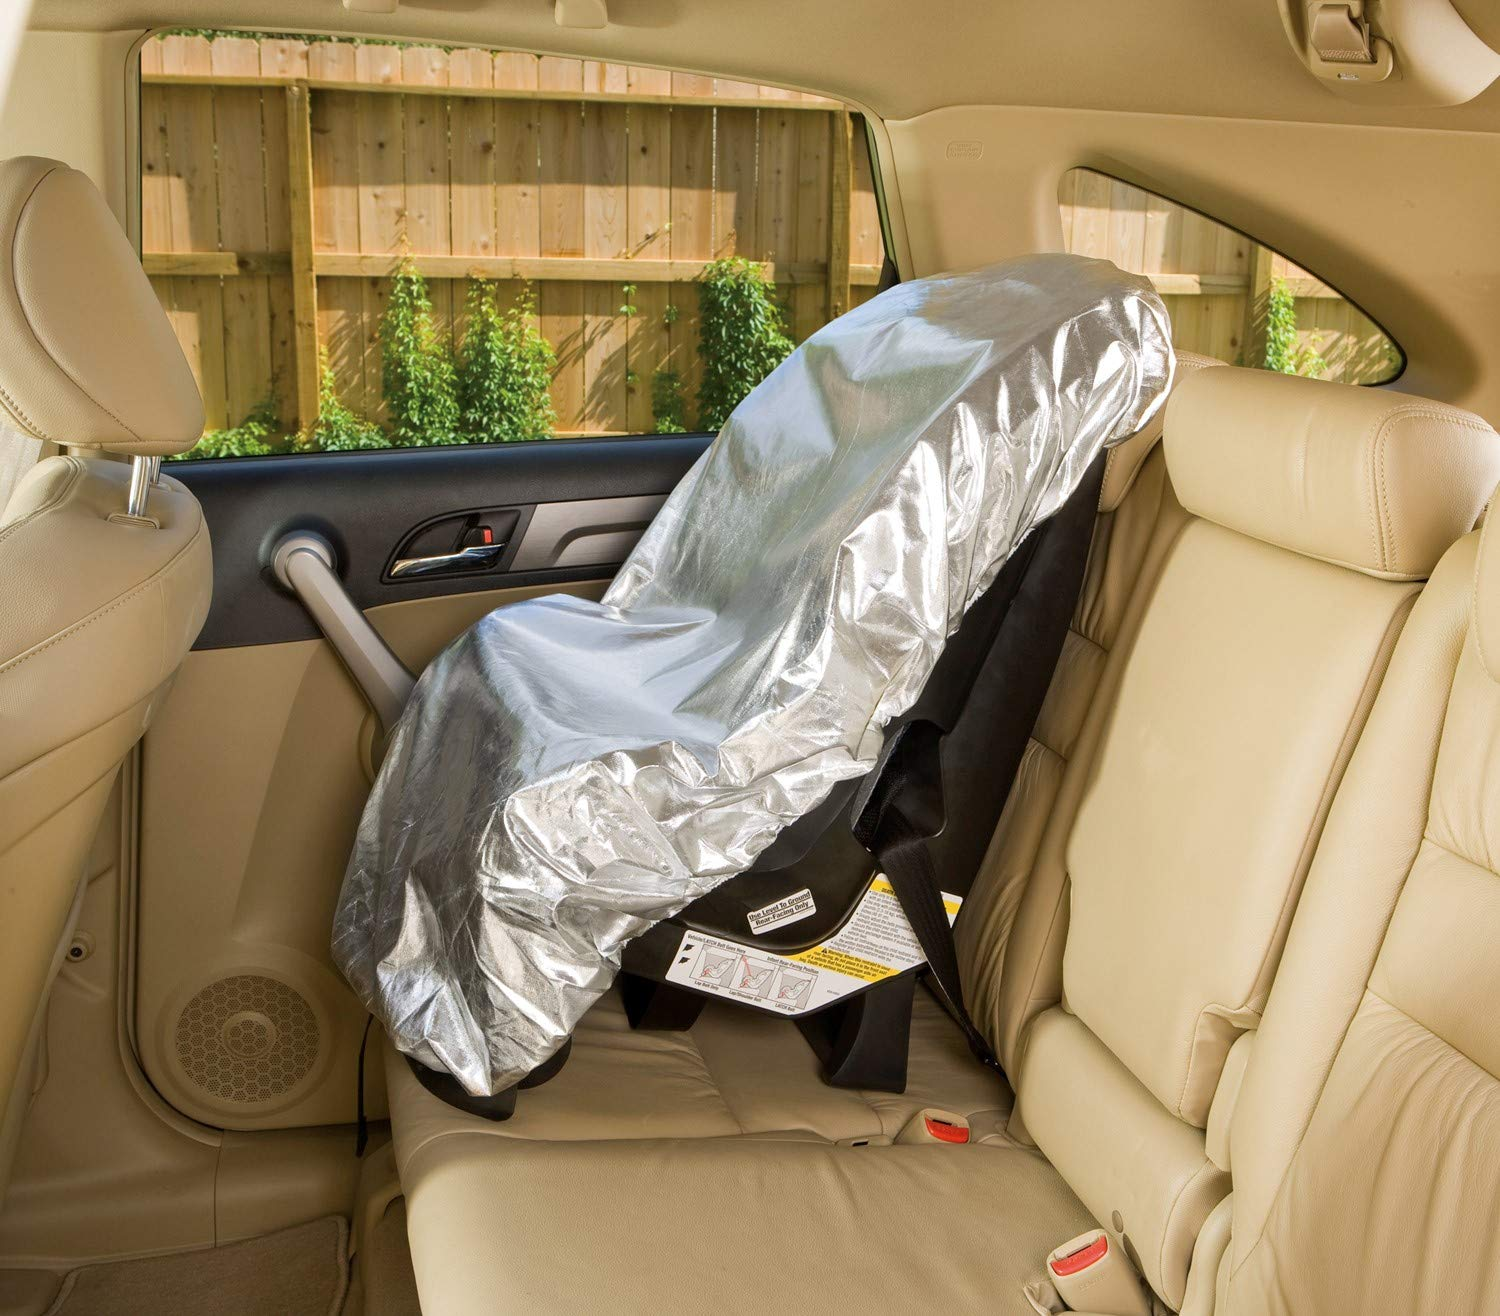 Amazon Com Car Seat Sun Shade Cover Keep Your Baby S Carseat At A Cooler Temperature Covers And Blocks Out Heat Sun More Comfortable For Baby Or Child Protection